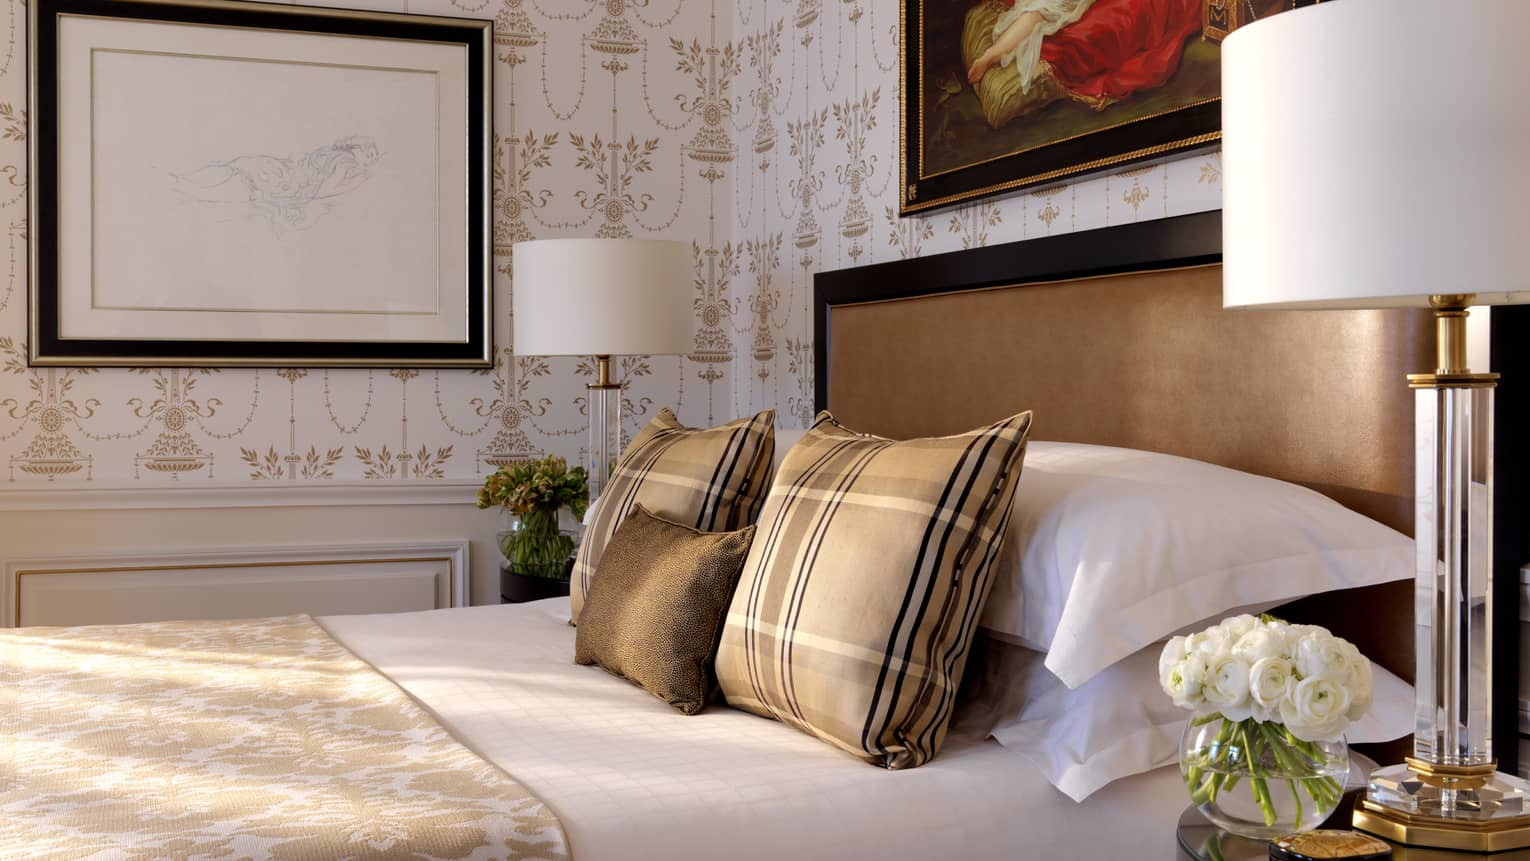 Close-up of bed with brown-and-gold plaid accent pillows, blanket, wallpaper, brown padded headboard